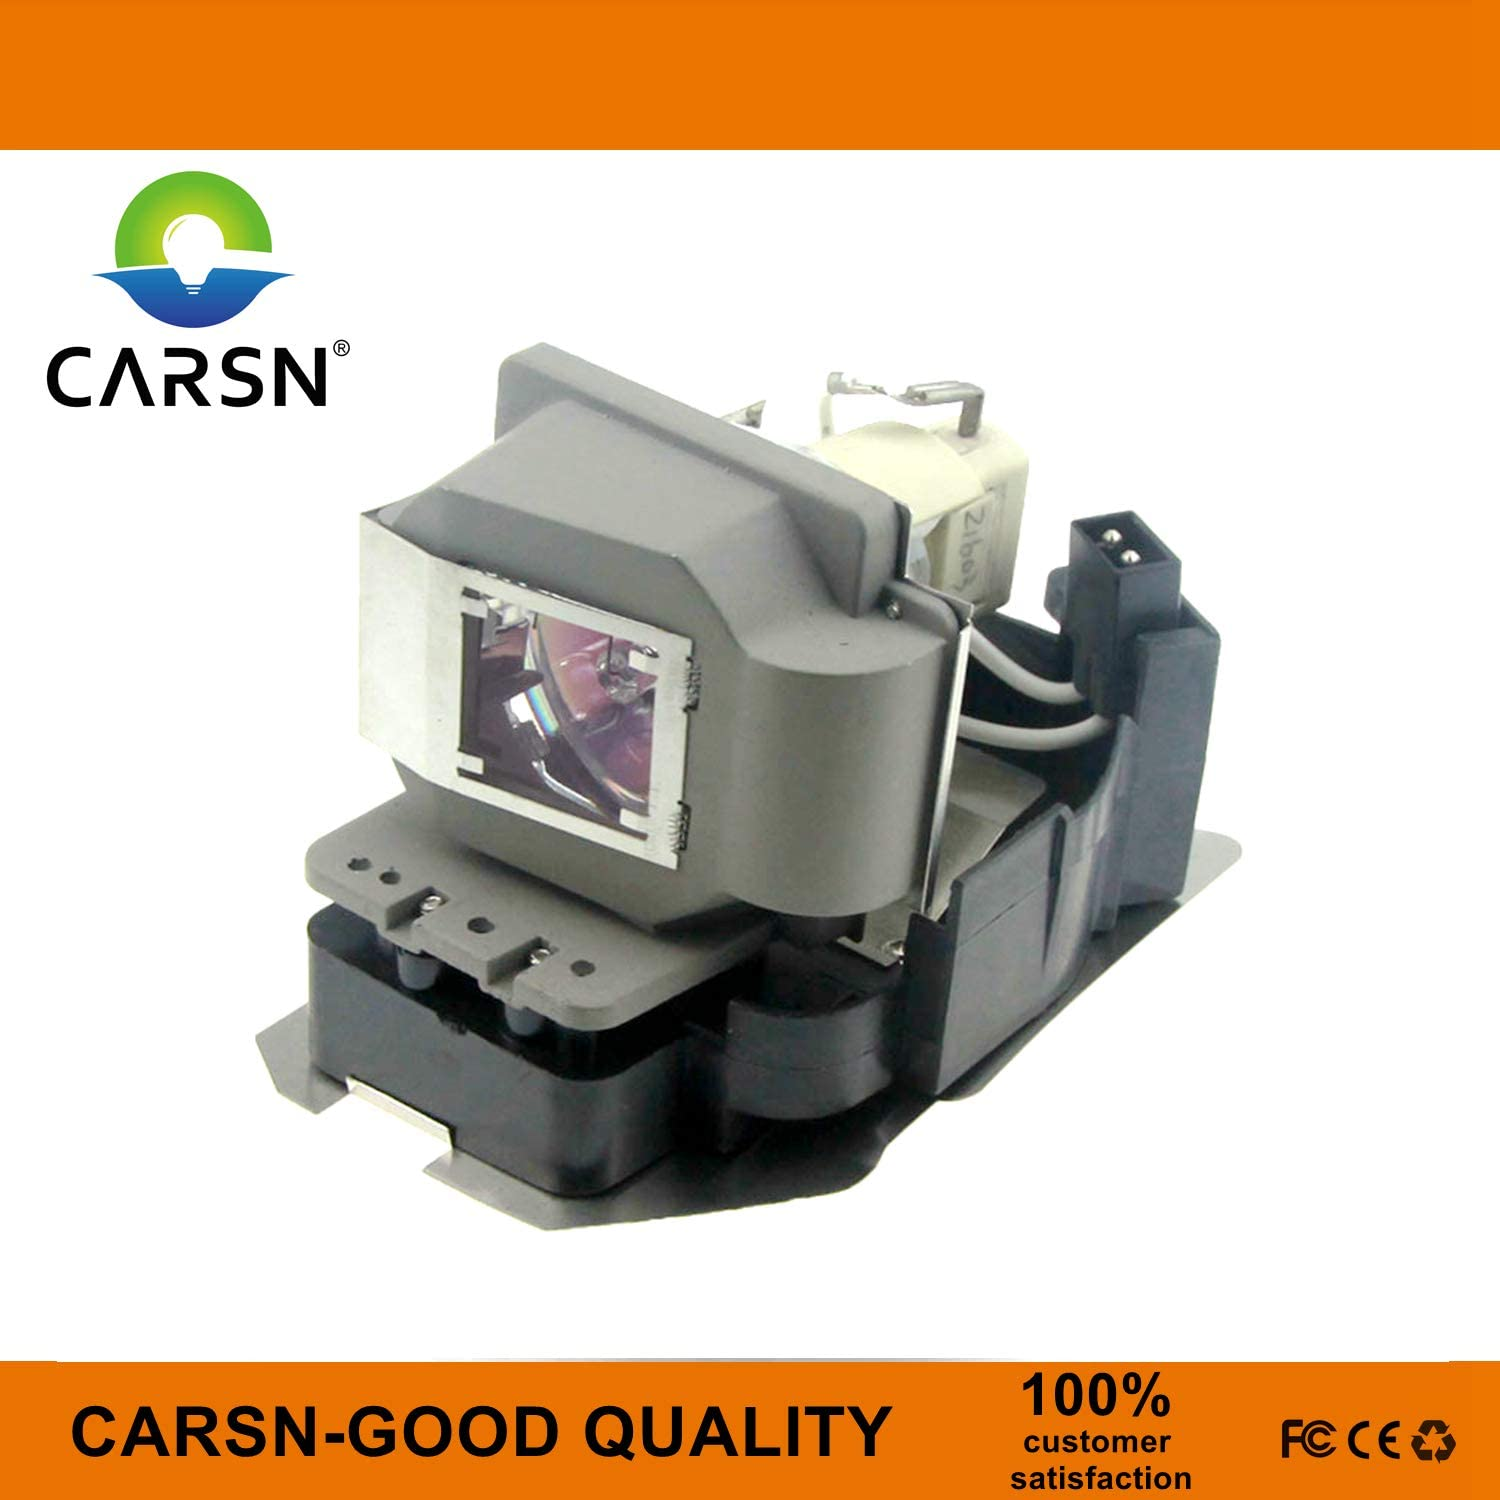 VLT-XD510LP Replacement Projector Lamp for Mitsubishi SD510U WD510U XD510 XD510U-G XD510U EX51U WD500U-ST WD500ST, Lamp with Housing by CARSN